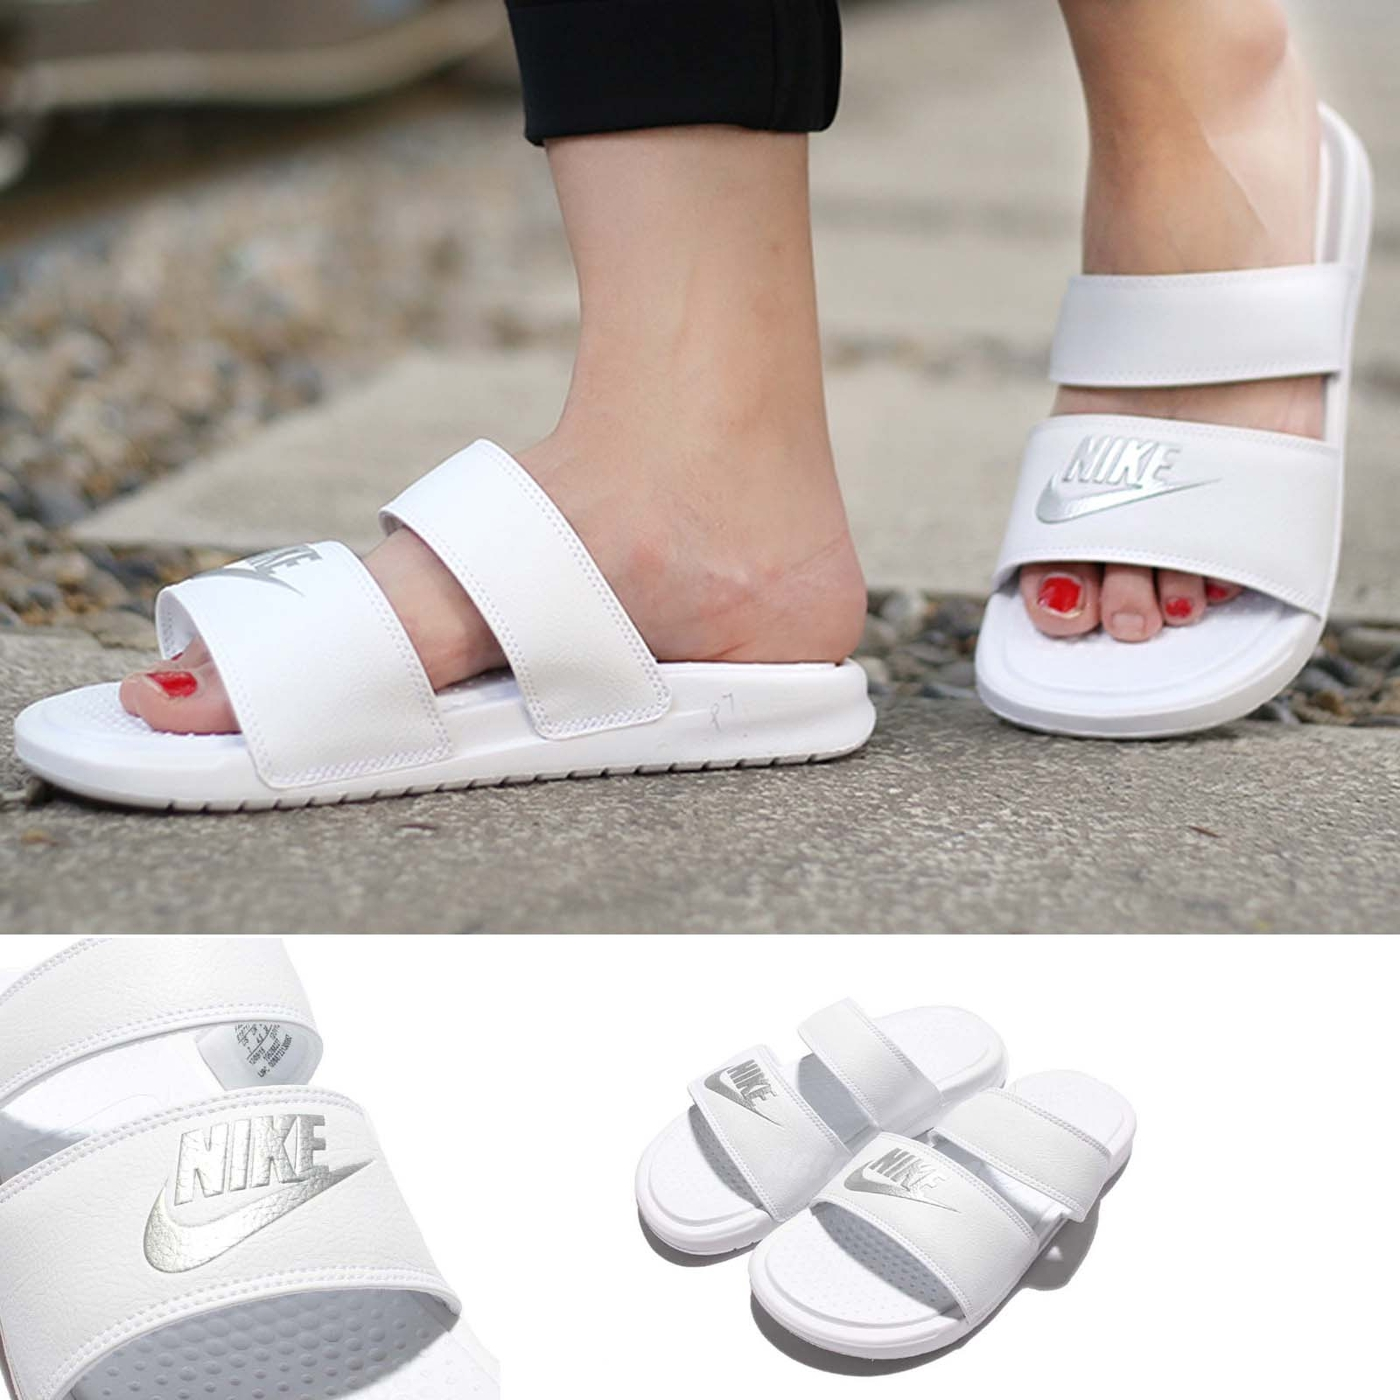 Nike拖鞋Wmns Benassi Duo Ultra Slide白銀雙帶女鞋涼鞋GD PUMP306 819717-100